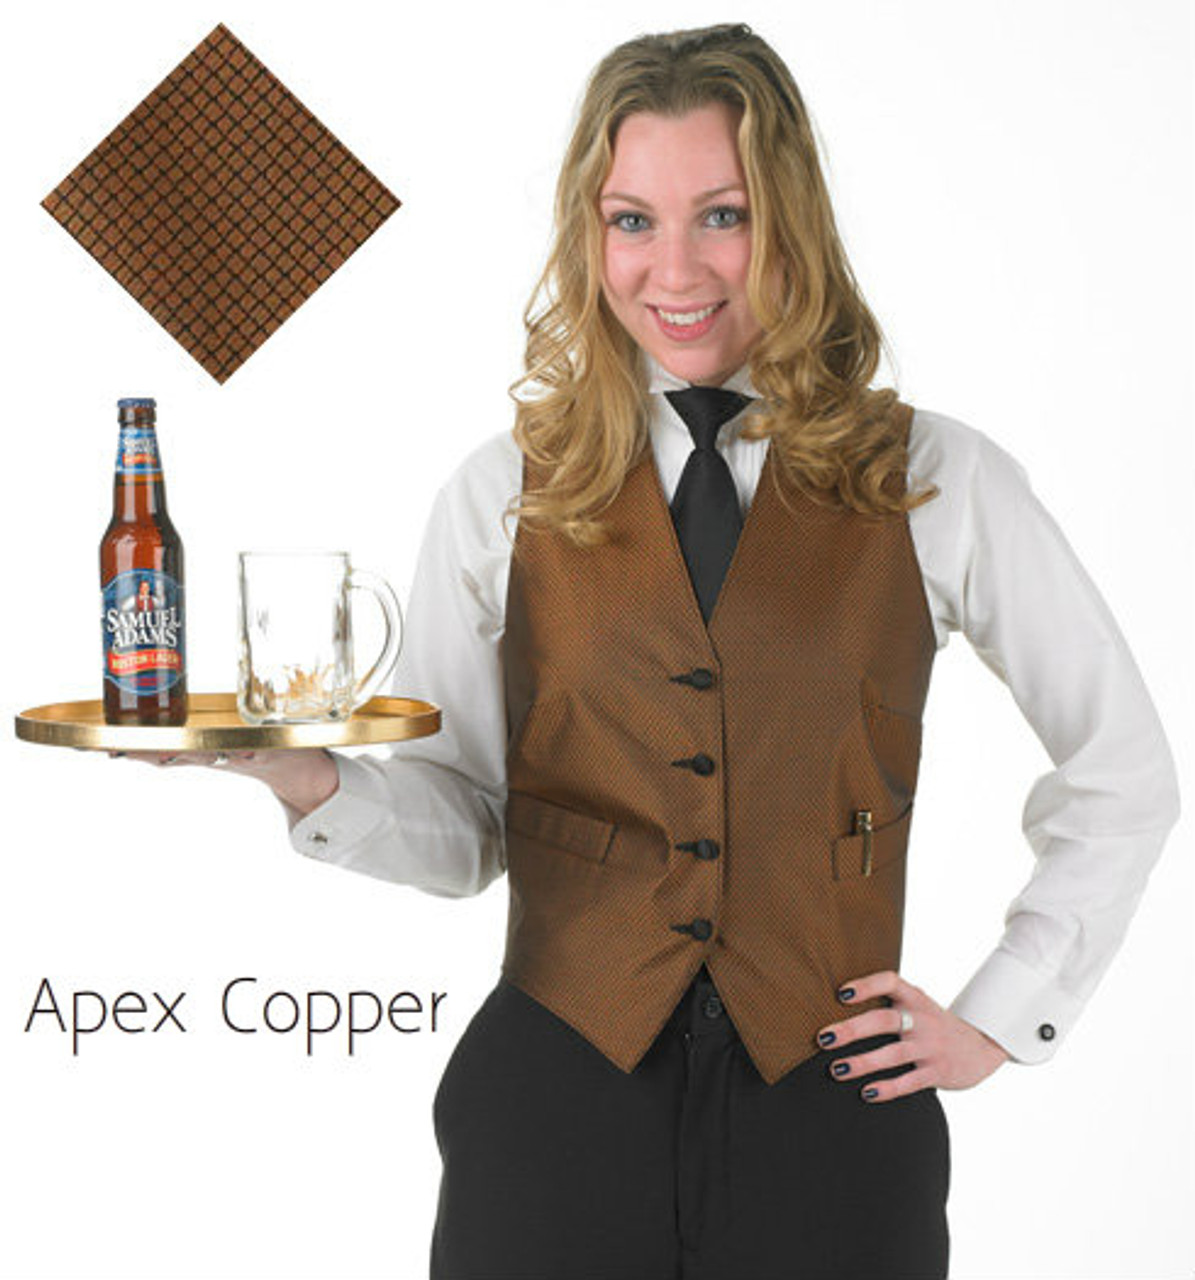 Apex Copper